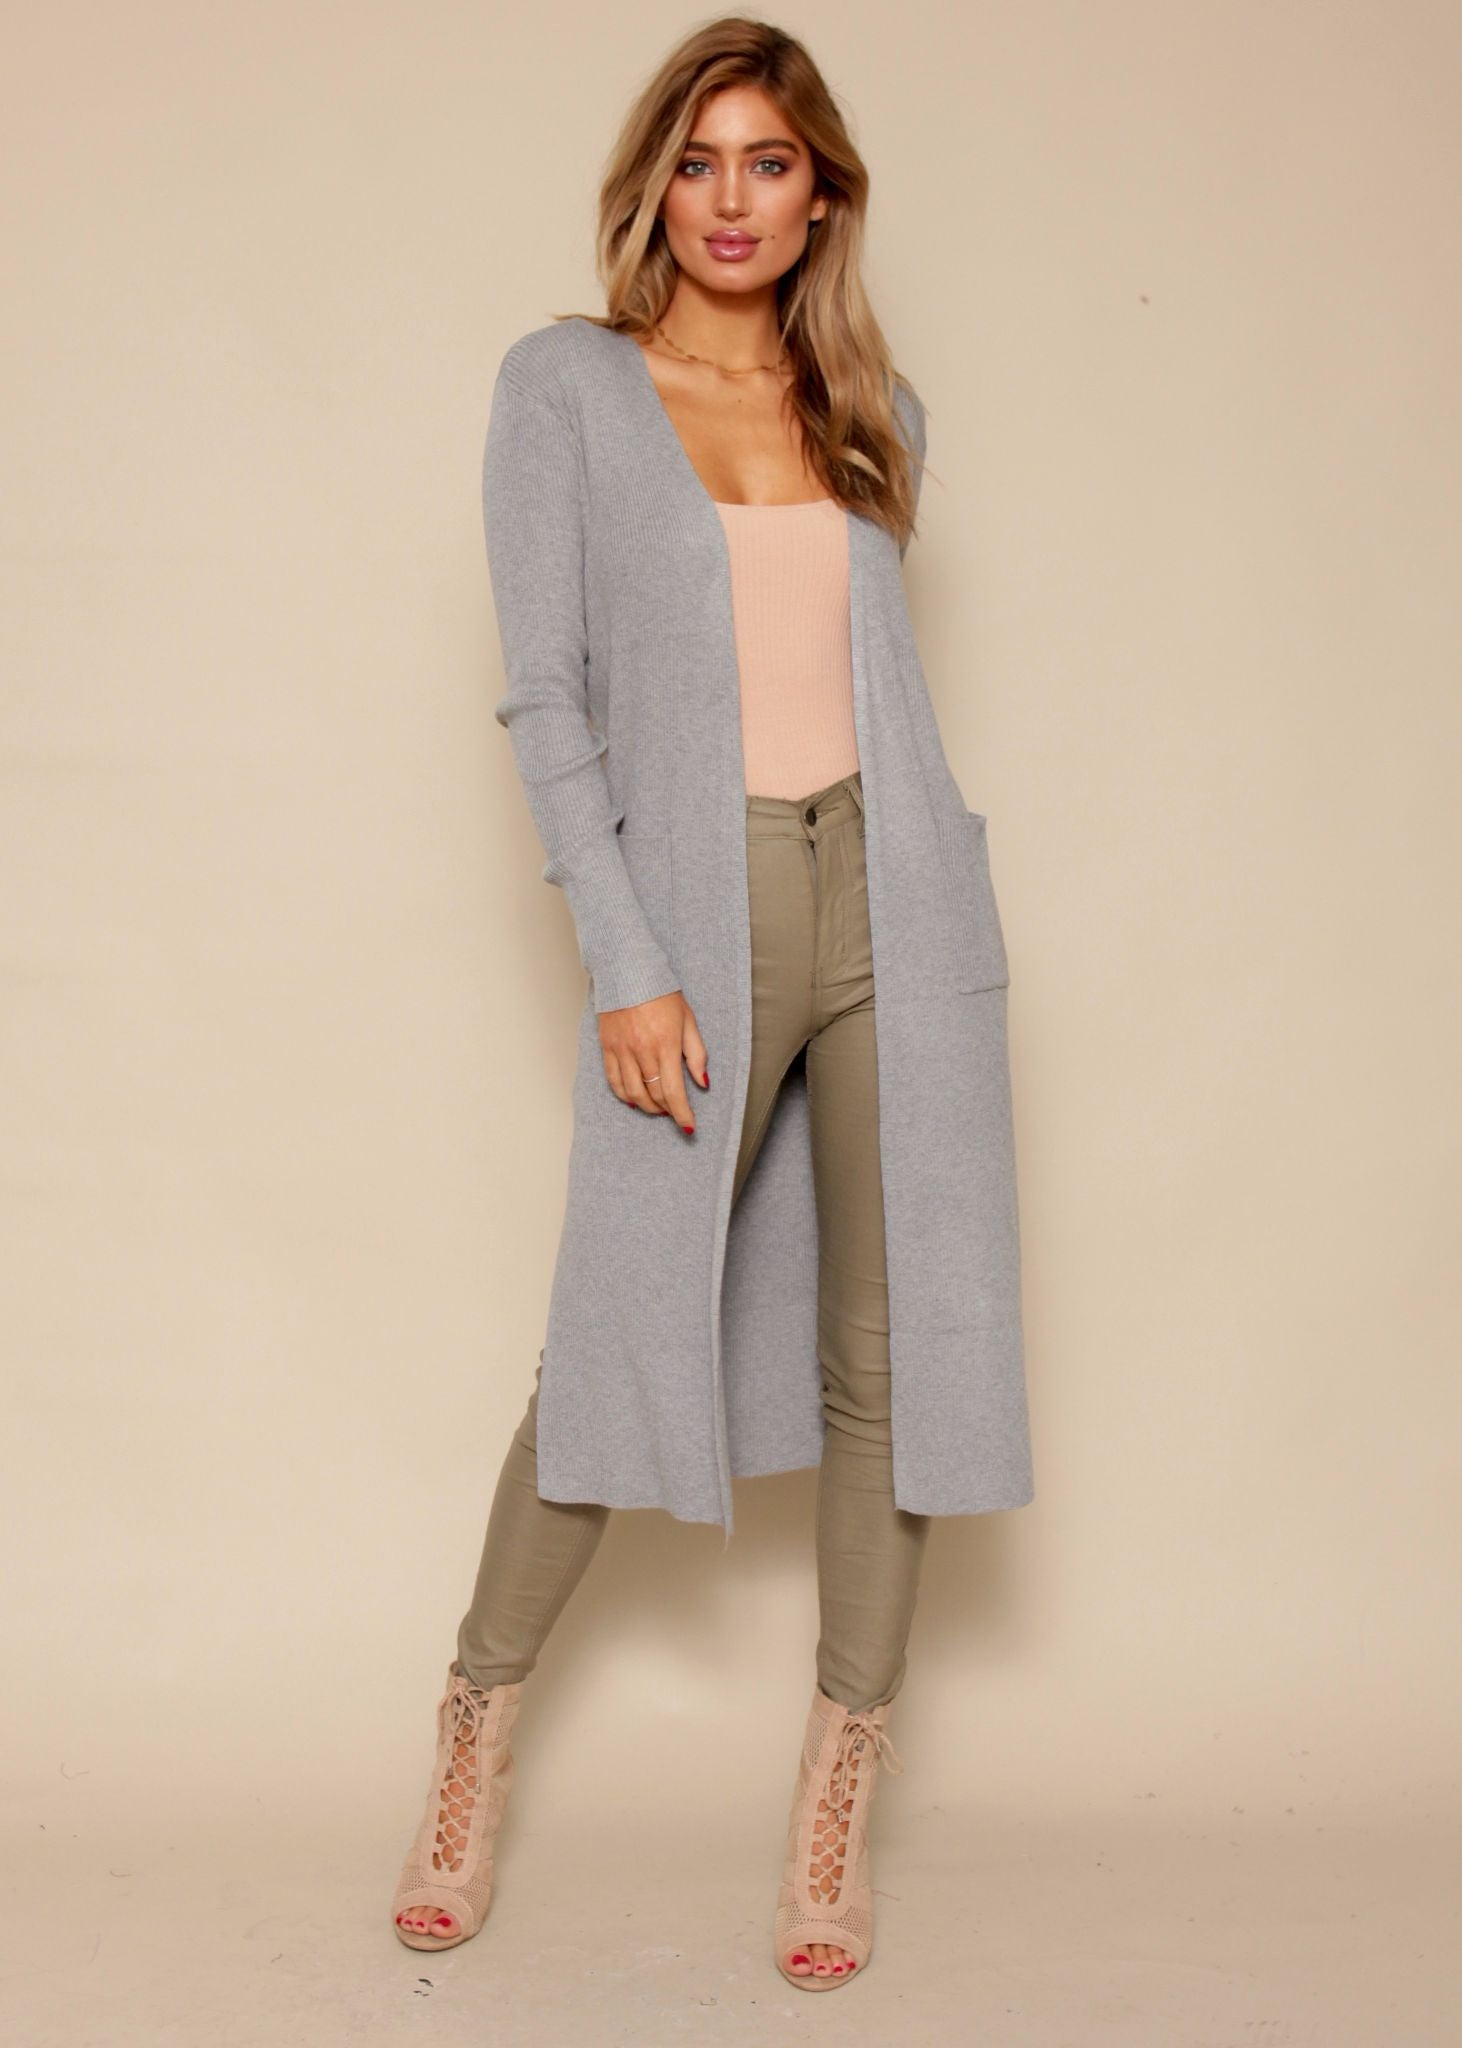 Hidden Hearts Cardigan - Grey